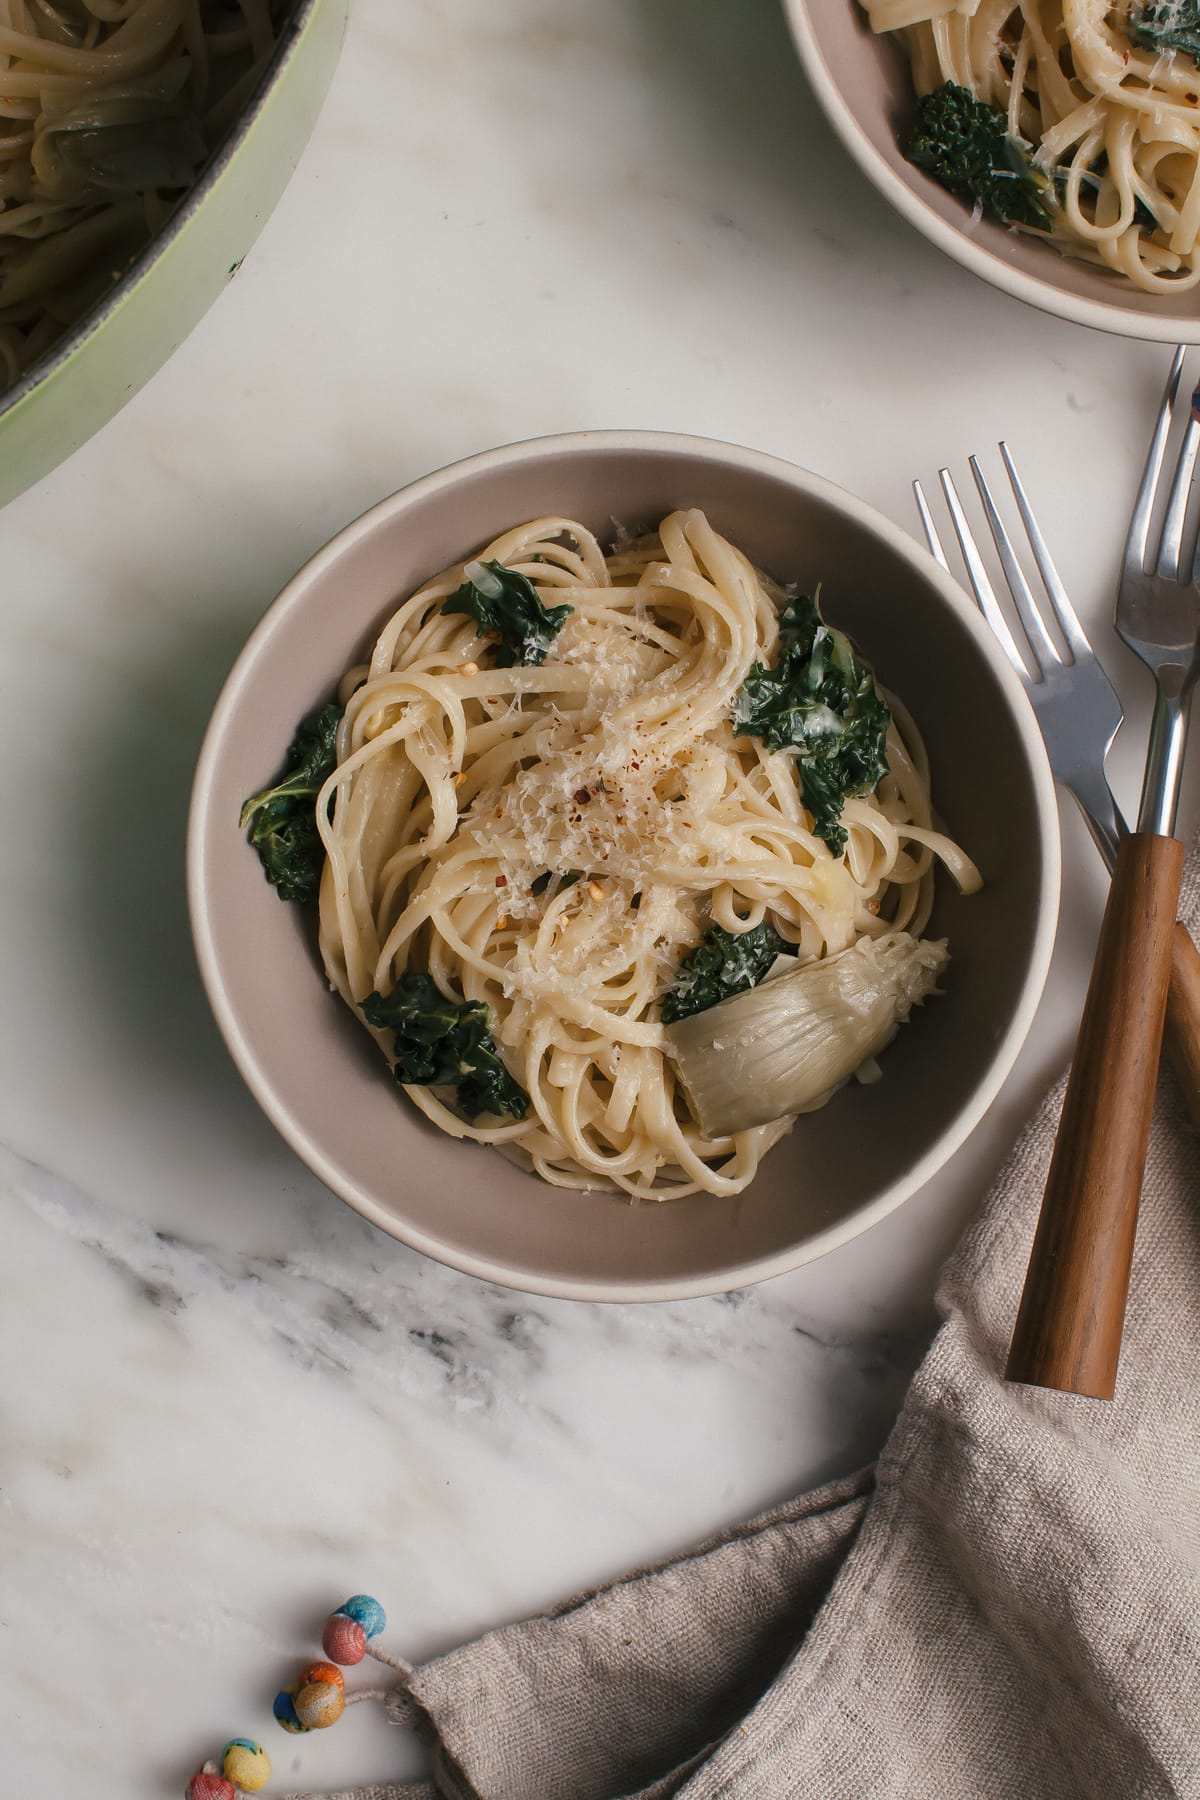 Lemon-y, Artichoke-y, Kale-y One Pot Pasta